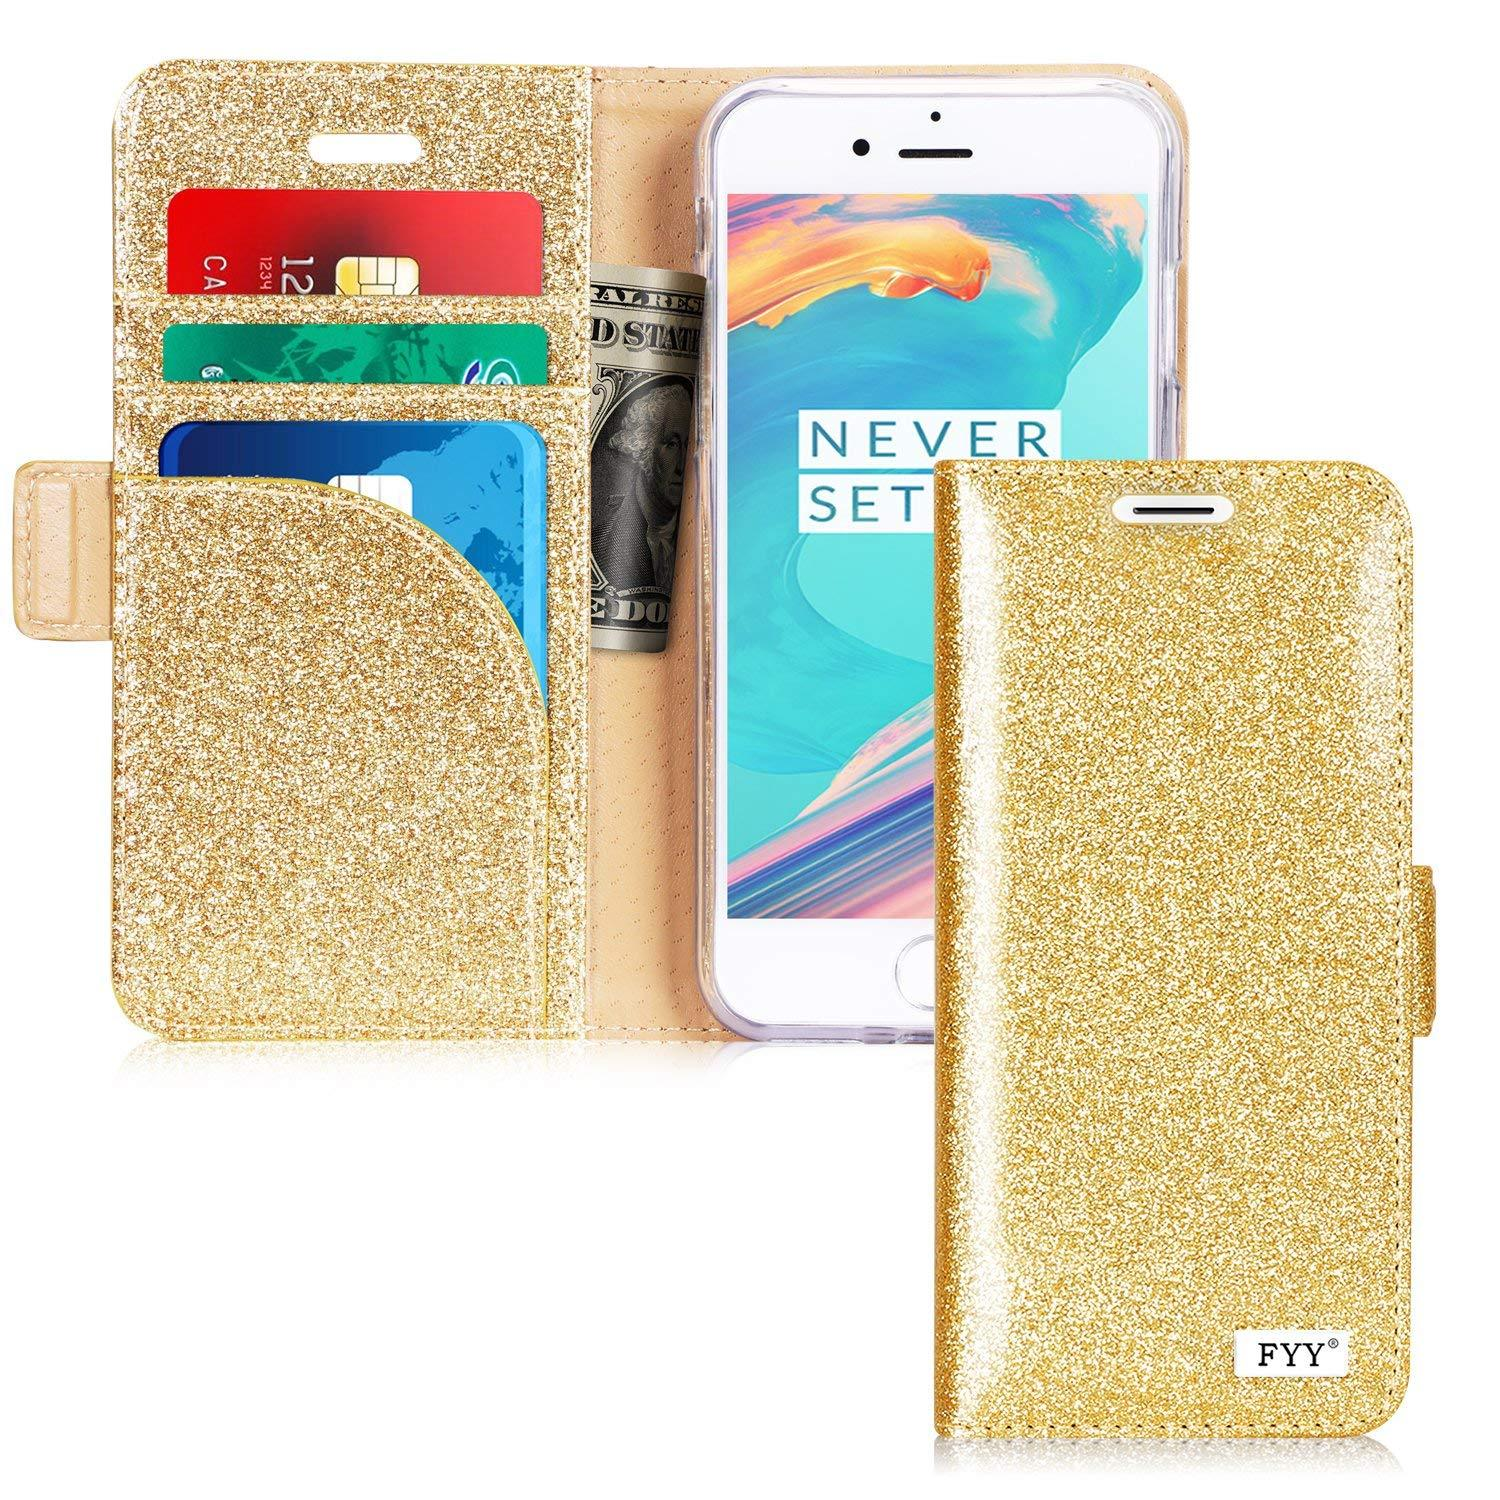 PU Leather Case for iPhone 8 Plus/iPhone 7 Plus